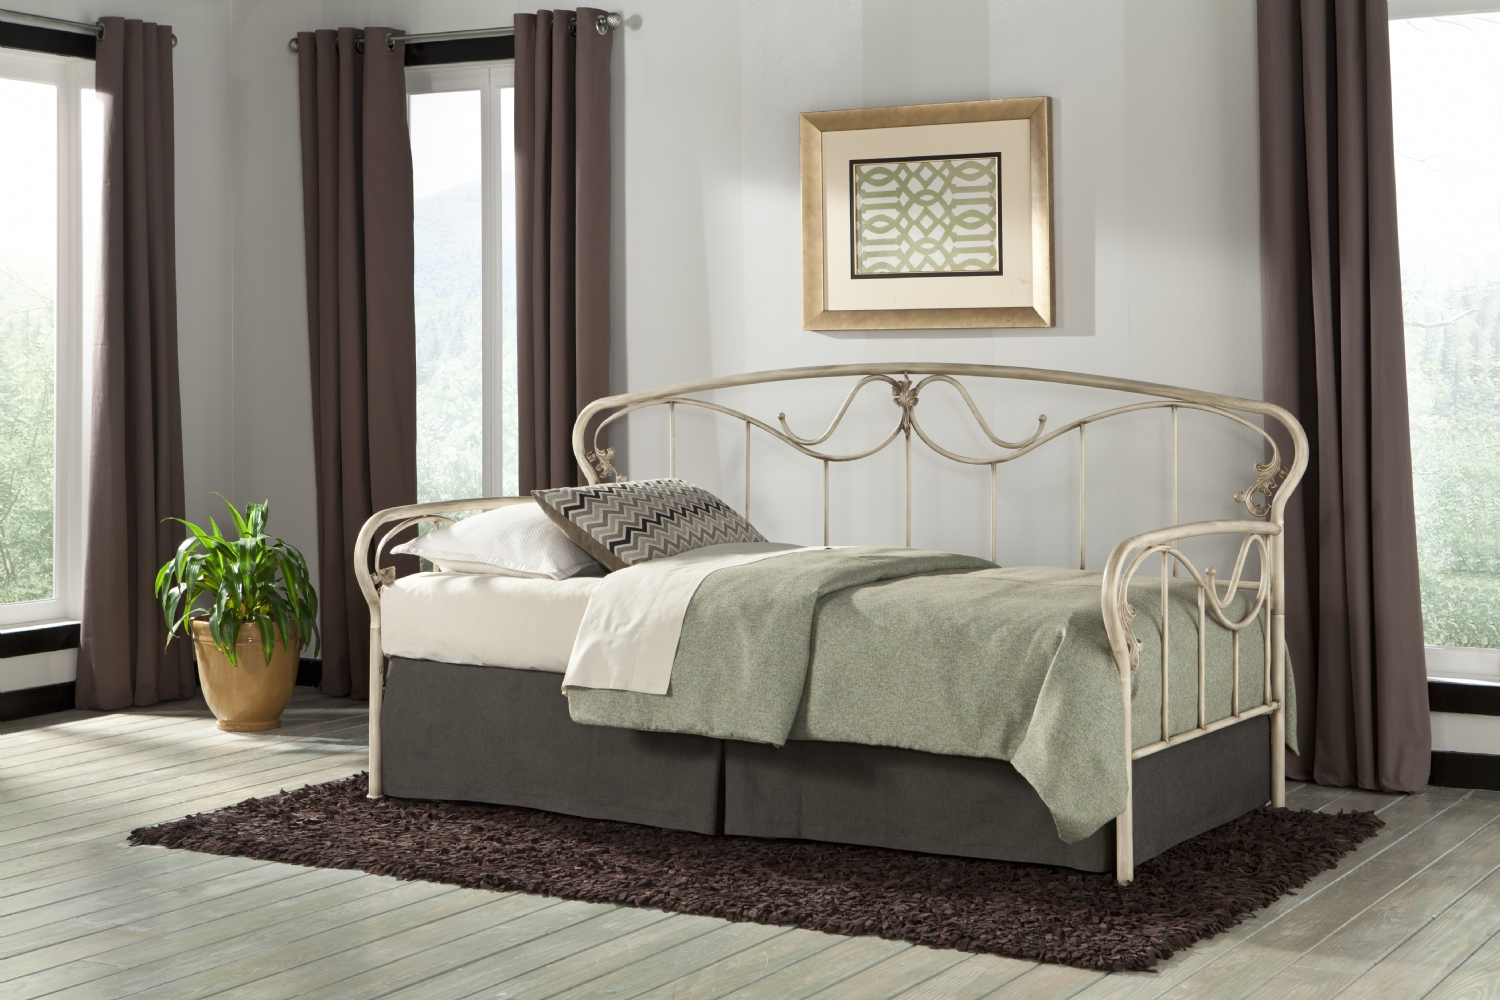 Bedrooms West Daybeds